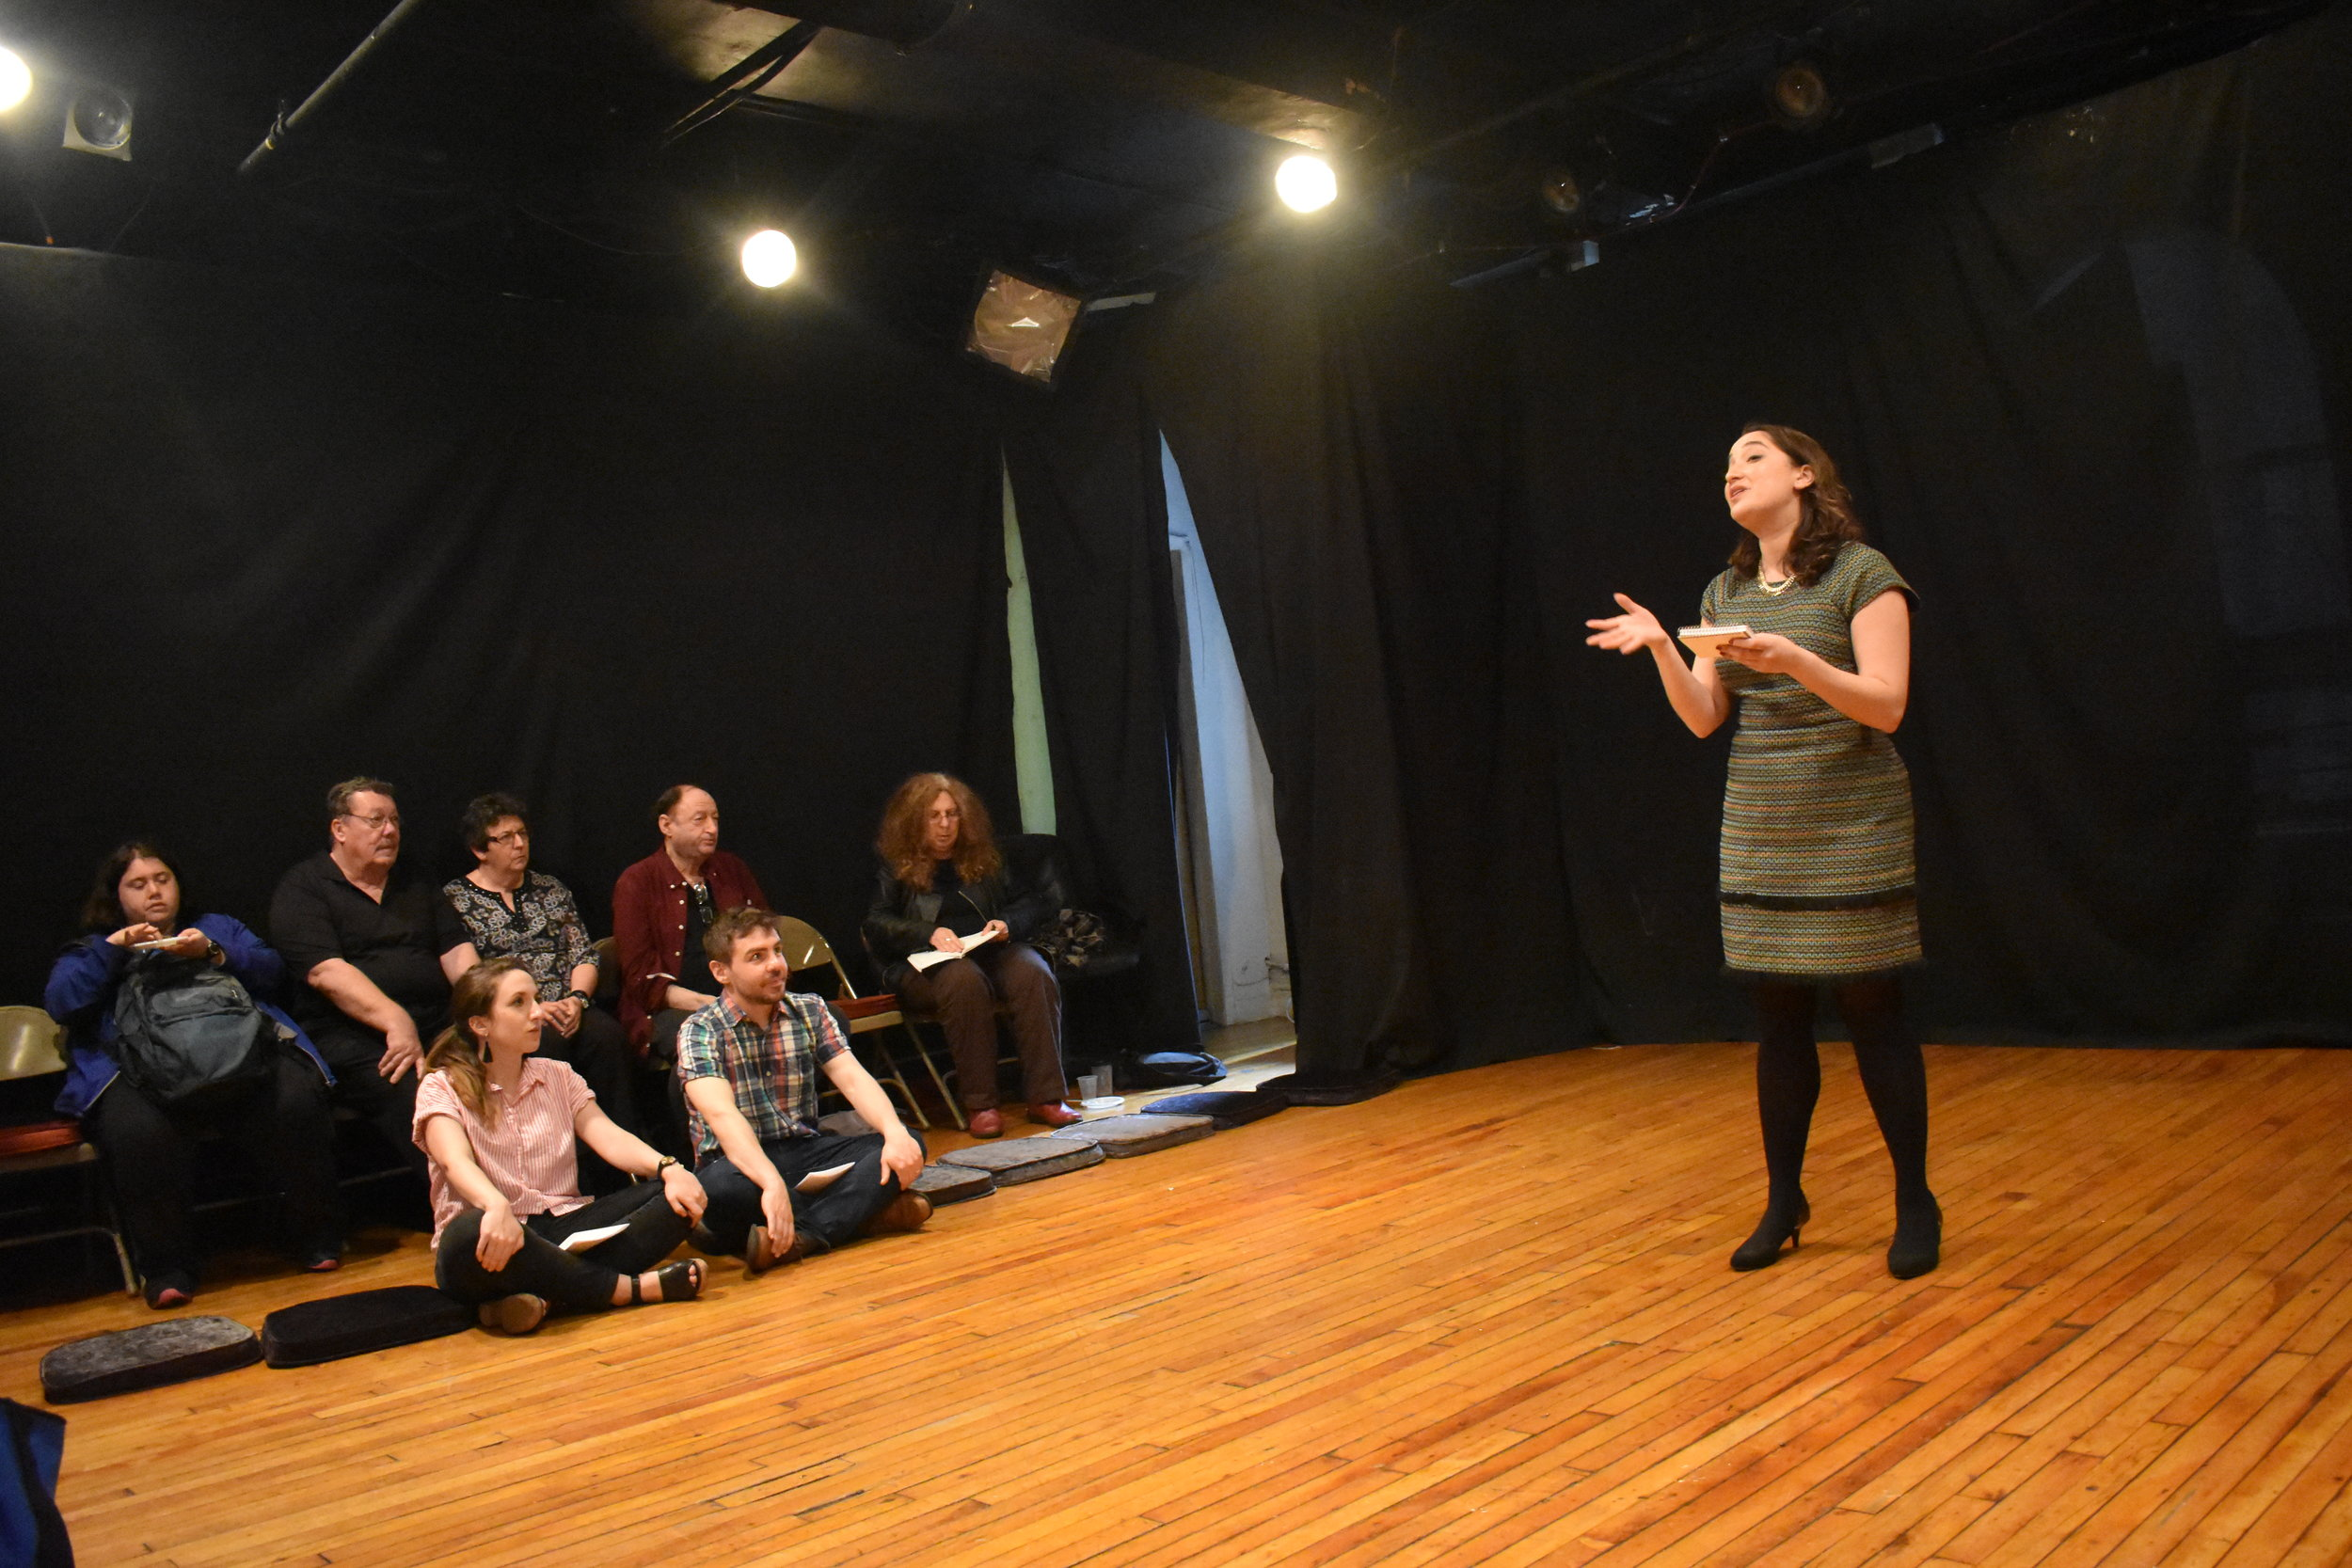 Monna Sabouri of the Muslim Writers Collective led the medieval Jewish-Muslim poetry workshop. Photo by Mollie Block